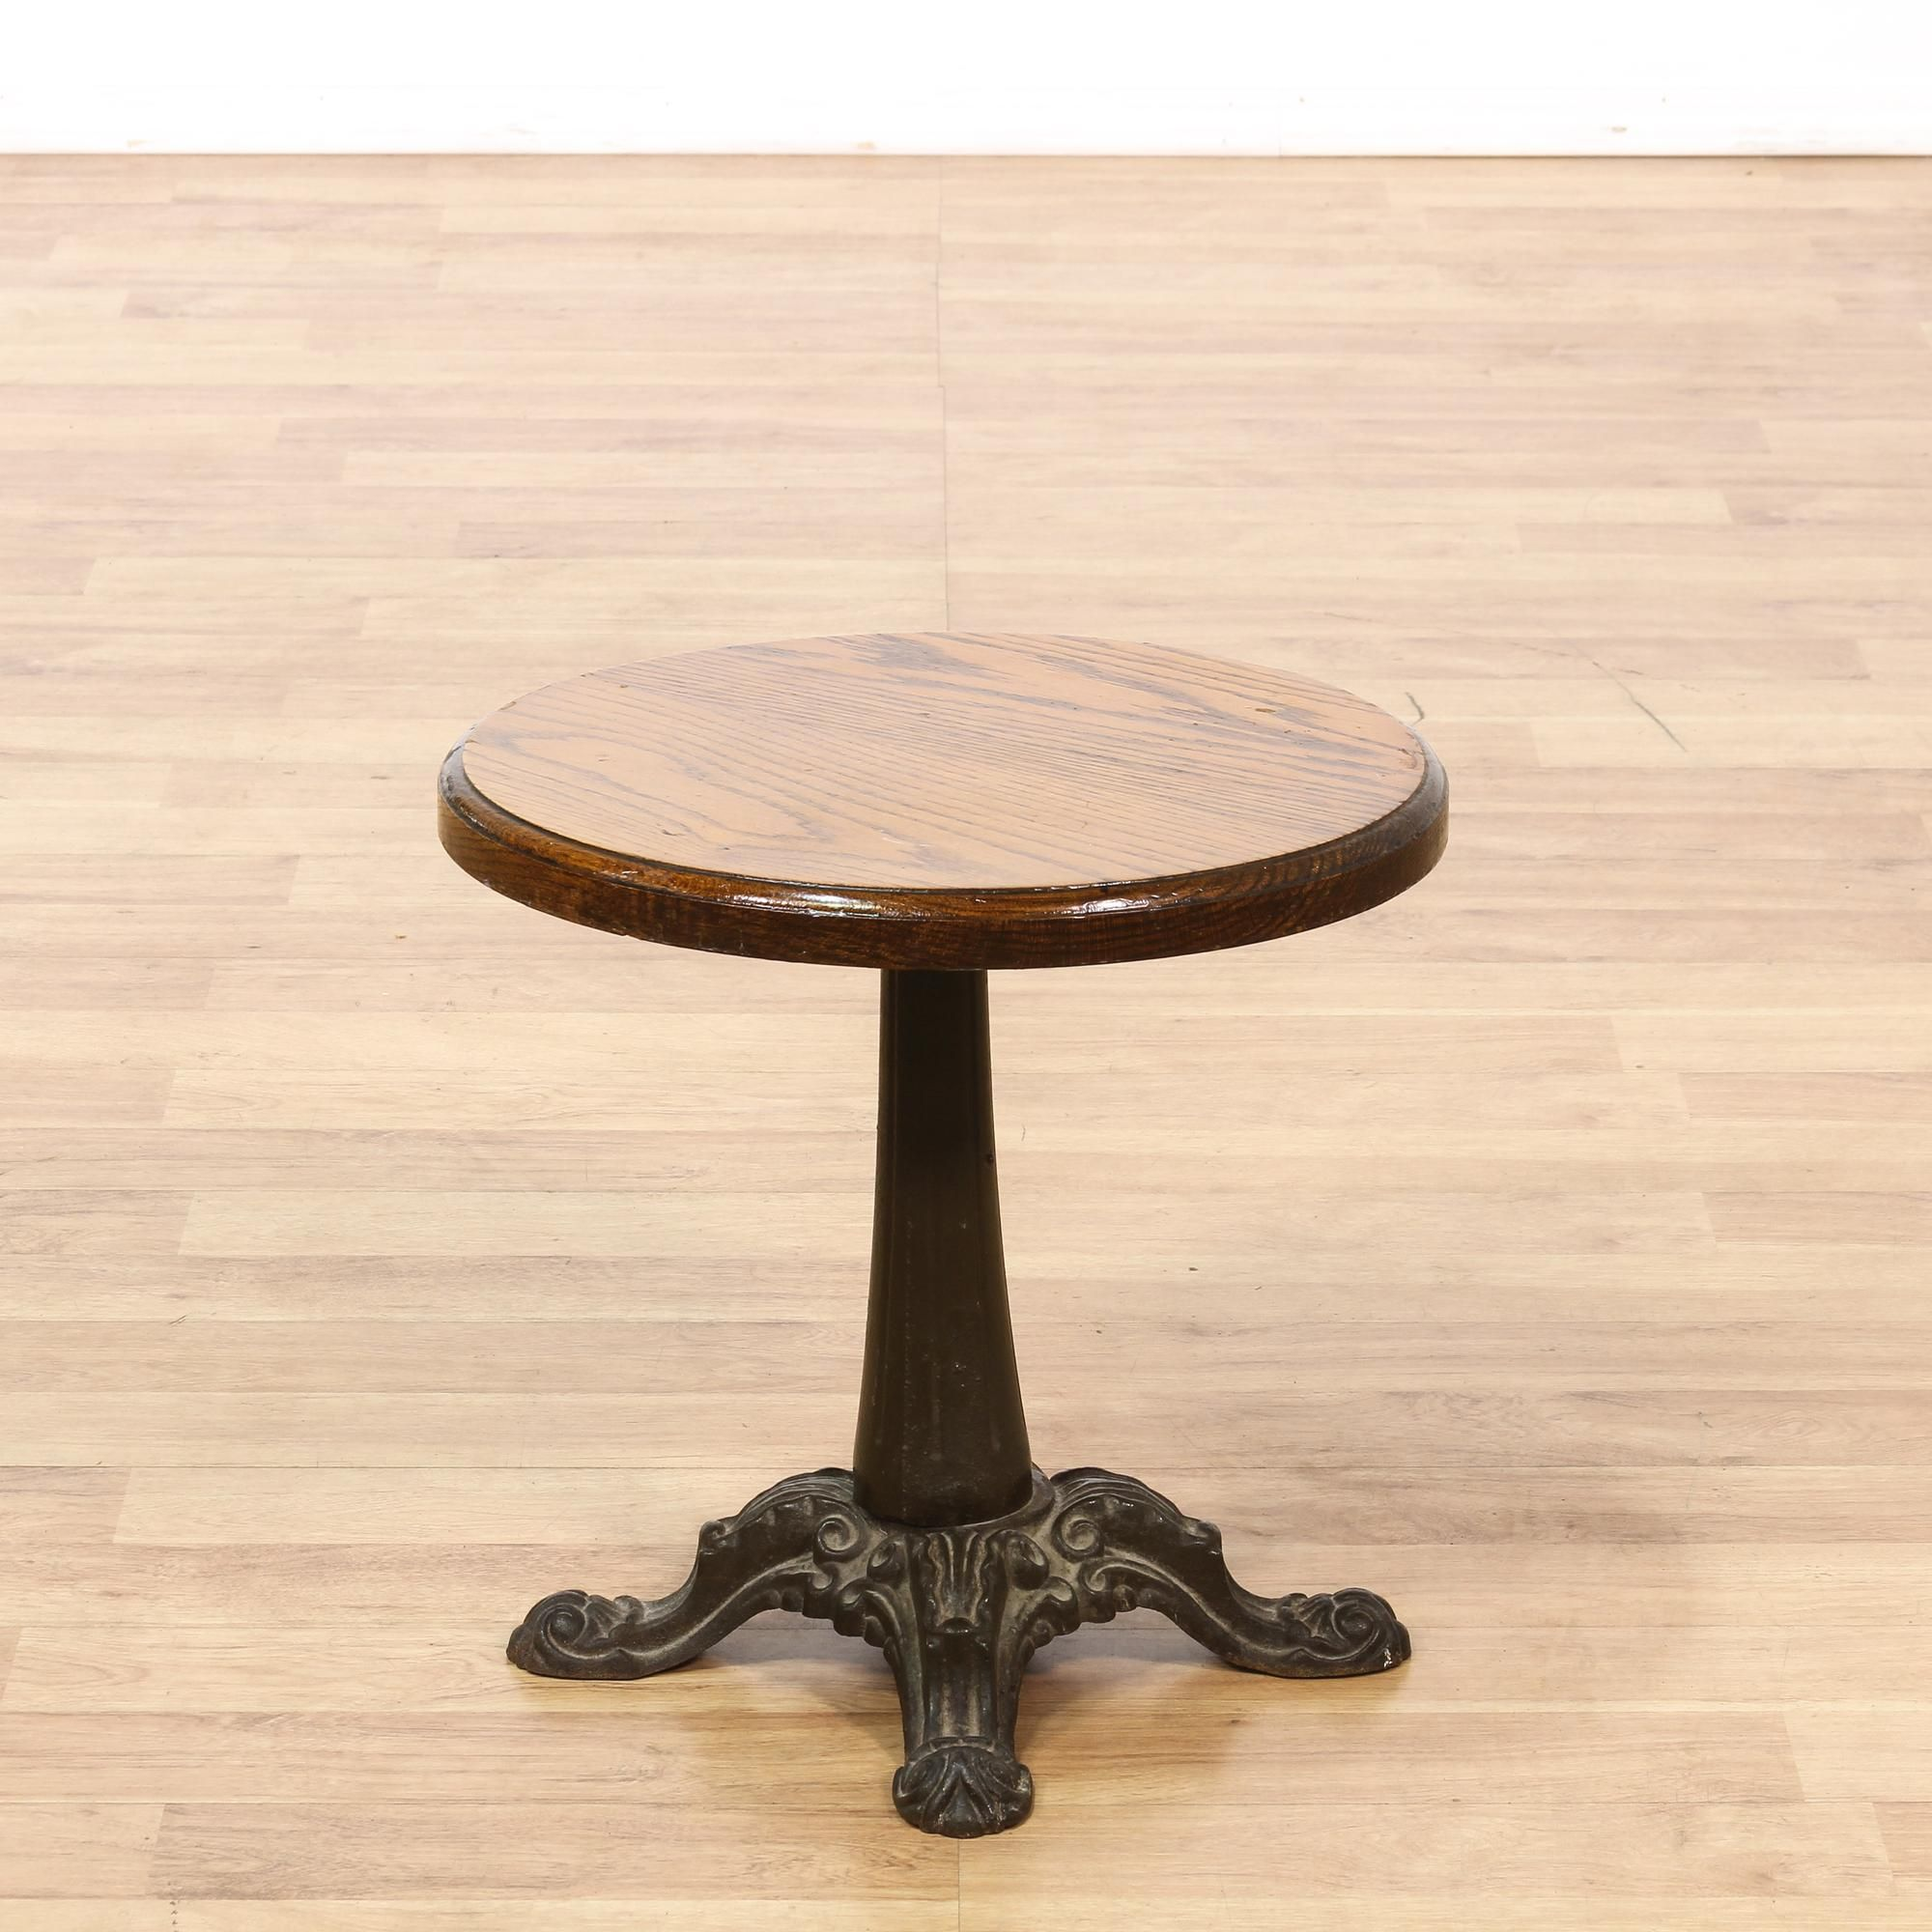 This Small Side Table Is Featured In A Solid Wood With A Glossy Oak Finish.  This End Table Has A Round Table Top With A Heavy Pedestal Base In A  Distressed ...